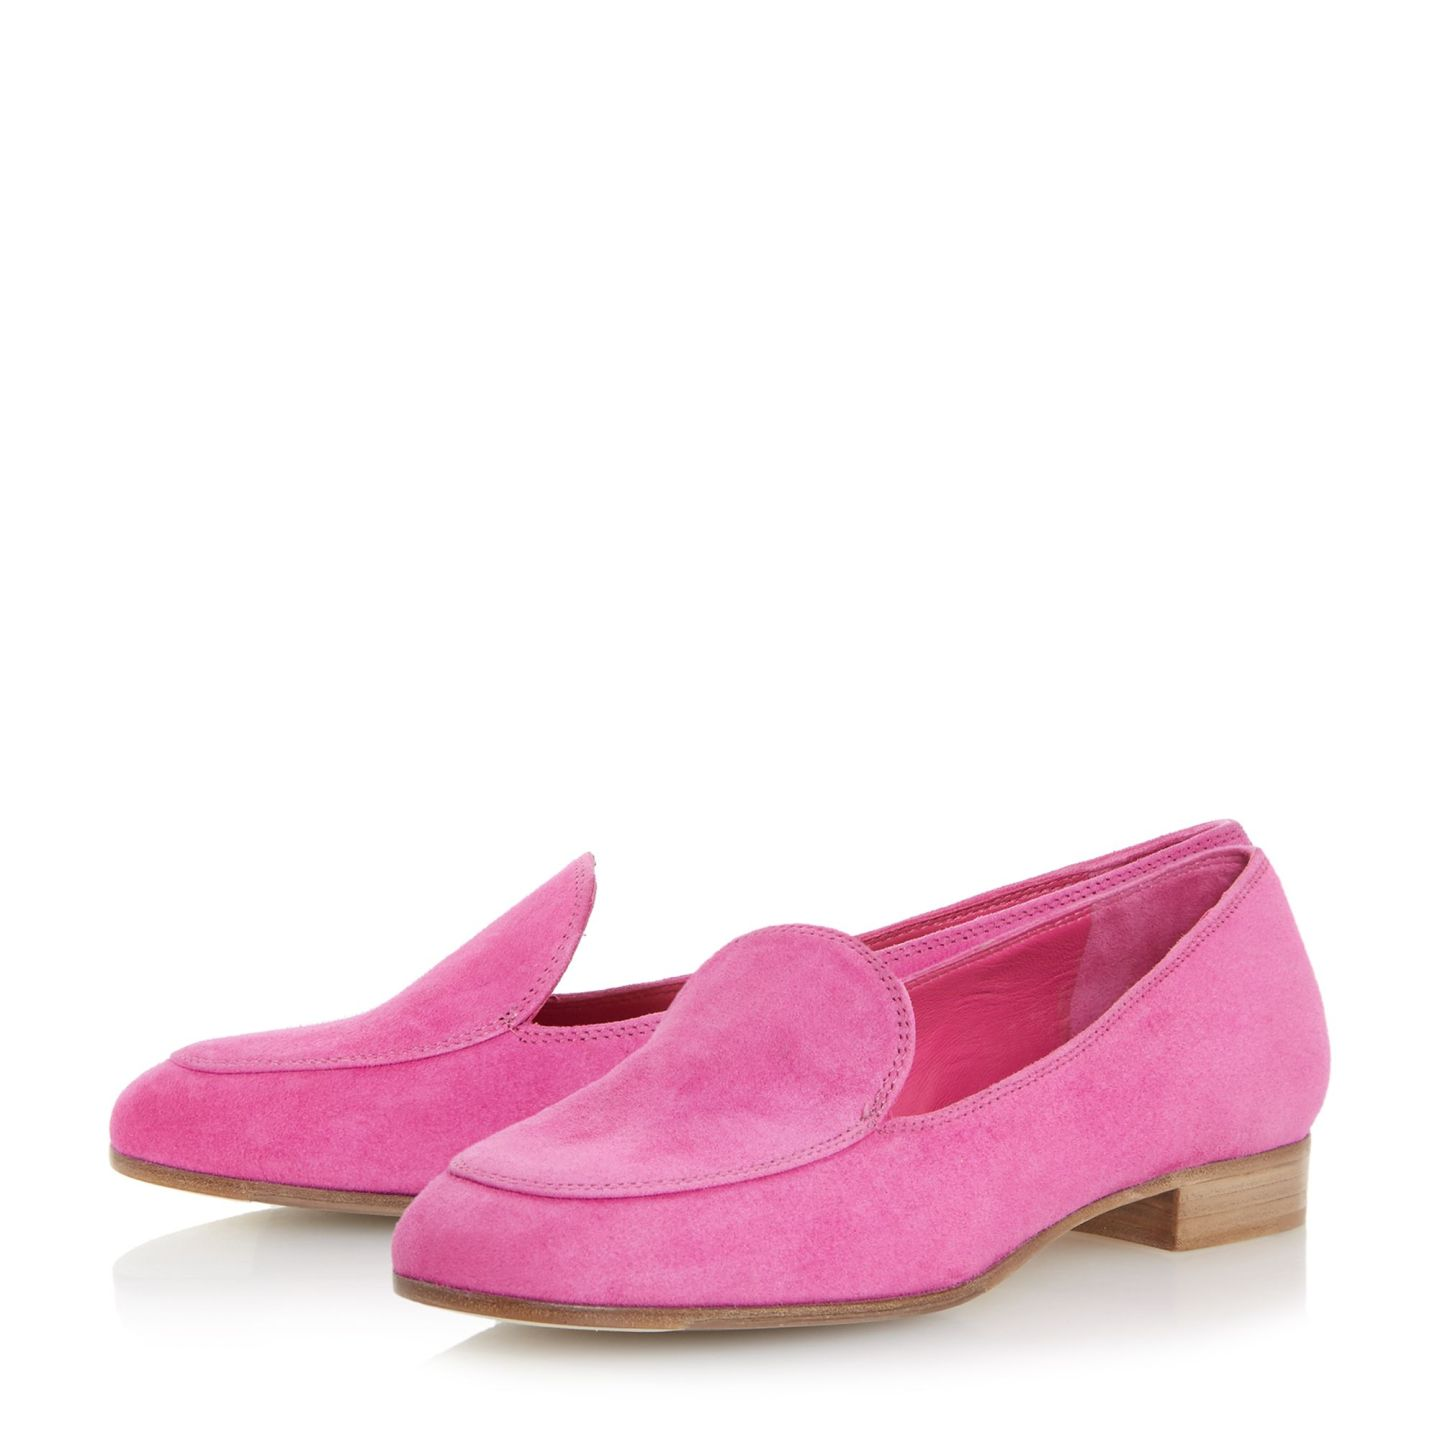 Dune black granite pink slip on loafers